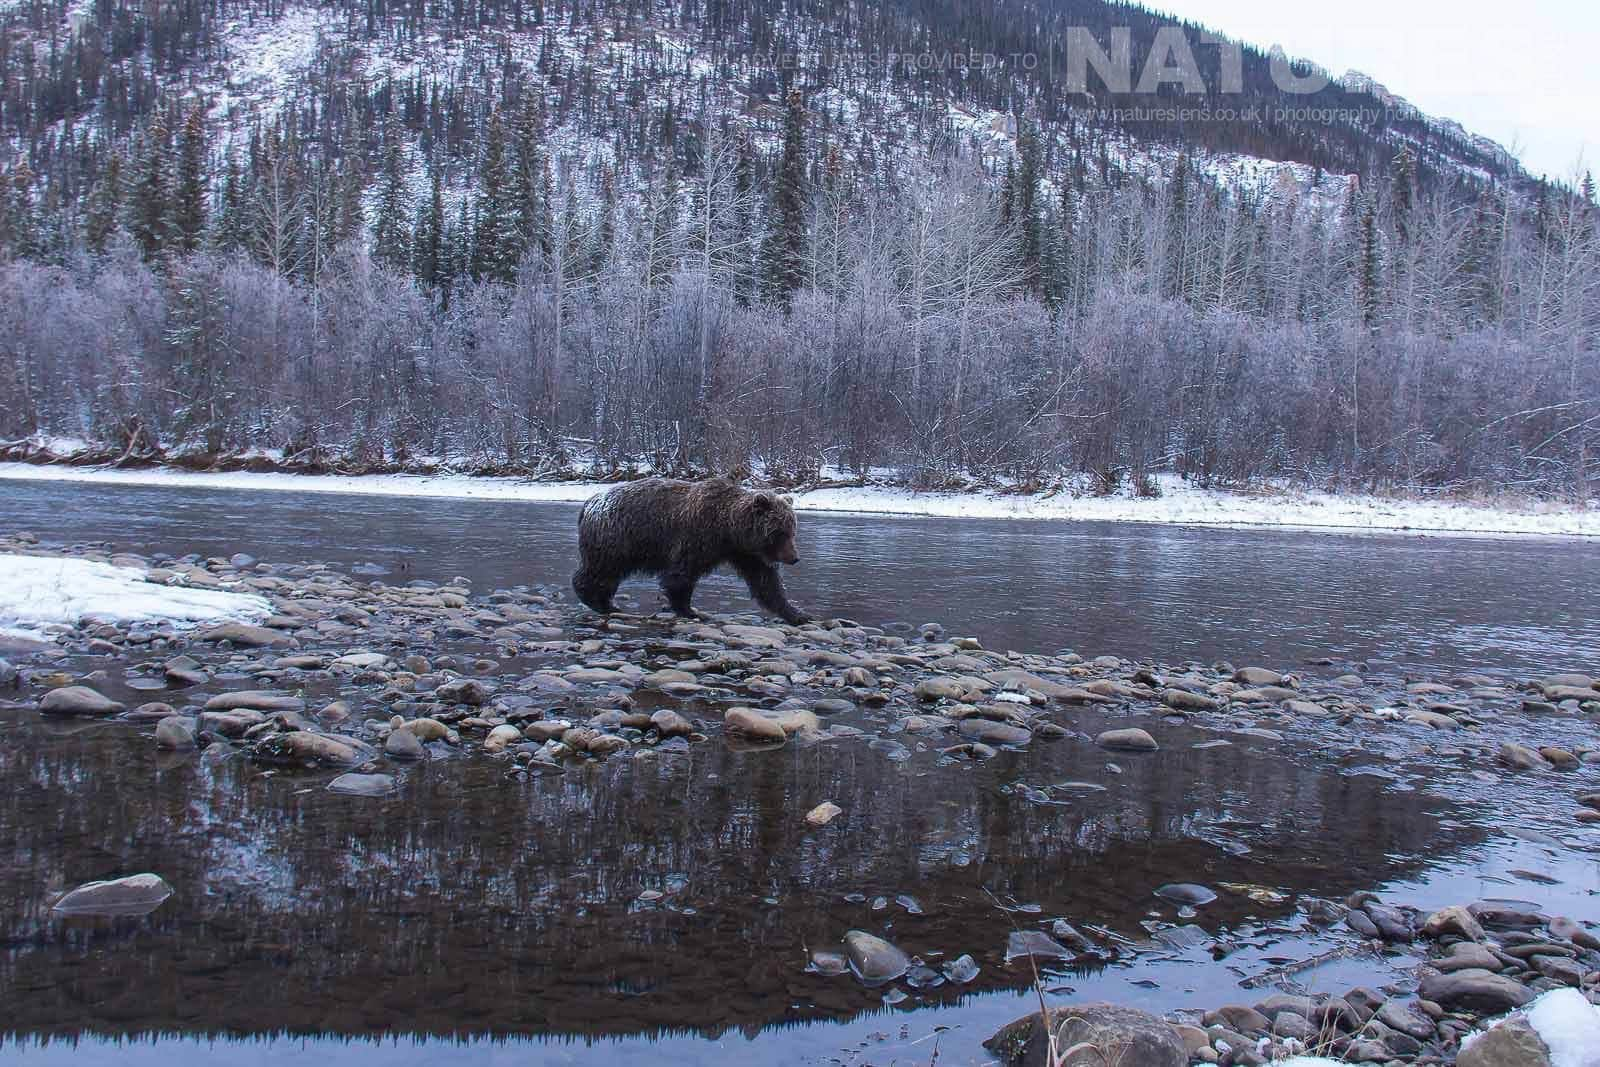 An Ice Covered Grizzly Bear Traverses The Banks Of Fishing Branch River Typical Of The Kind Of Image That May Be Captured On The NaturesLens Ice Bears Of The Yukon Photographic Holiday